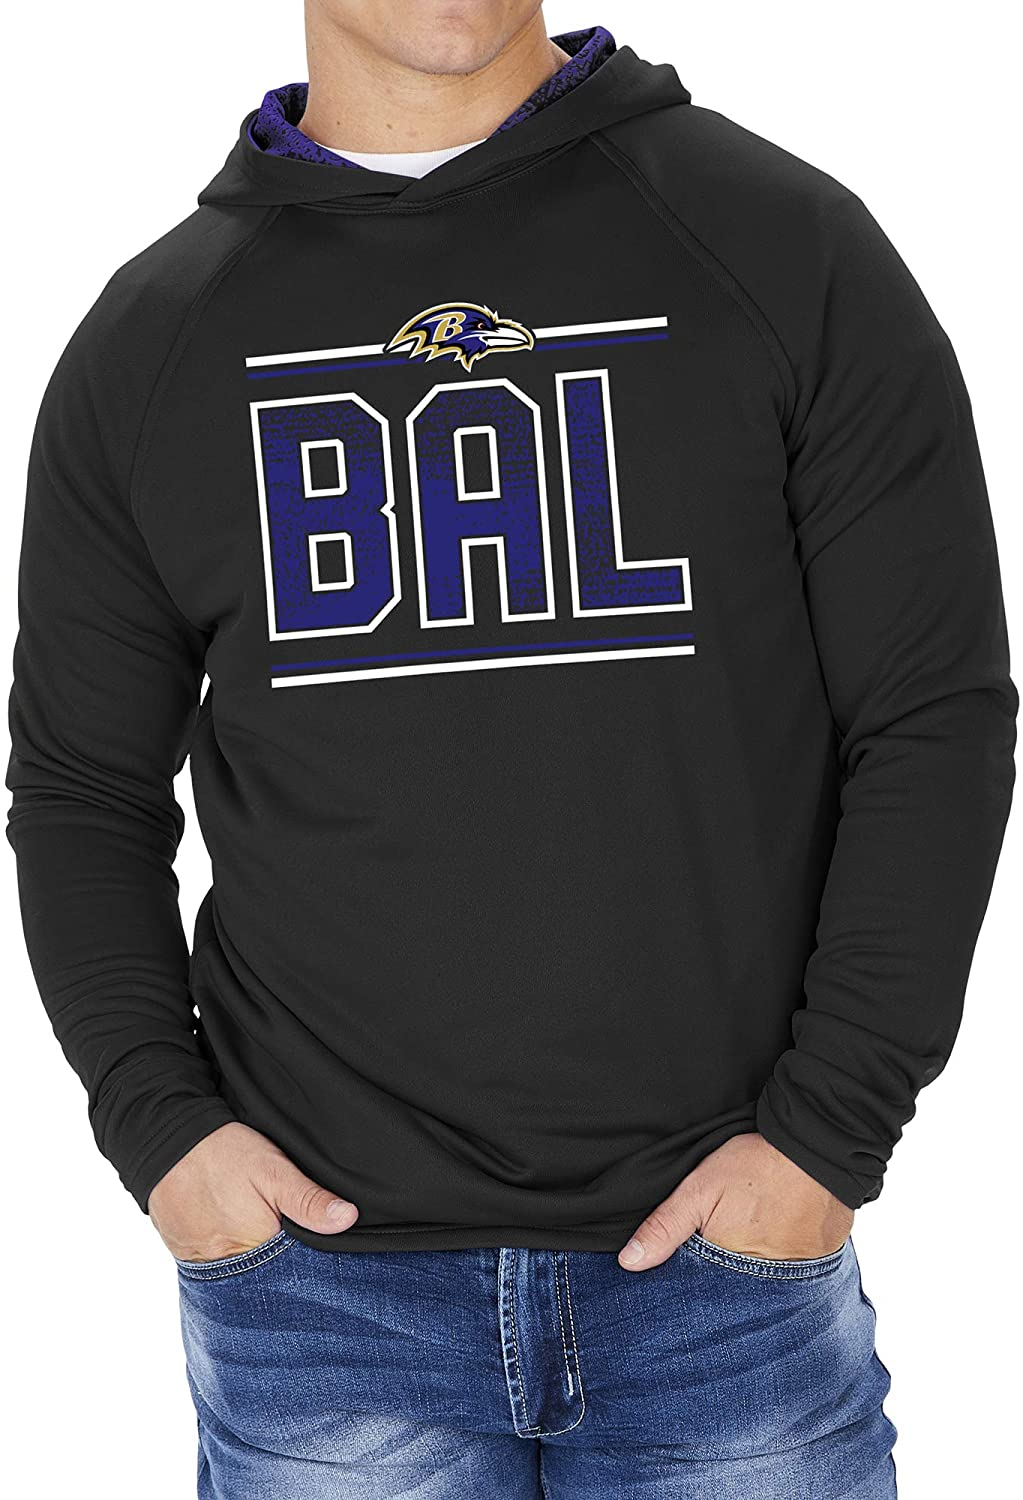 Zubaz Officially Licensed NFL Men's French Terry Lightweight Hoodie with Static Hoodie Liner, Team Color